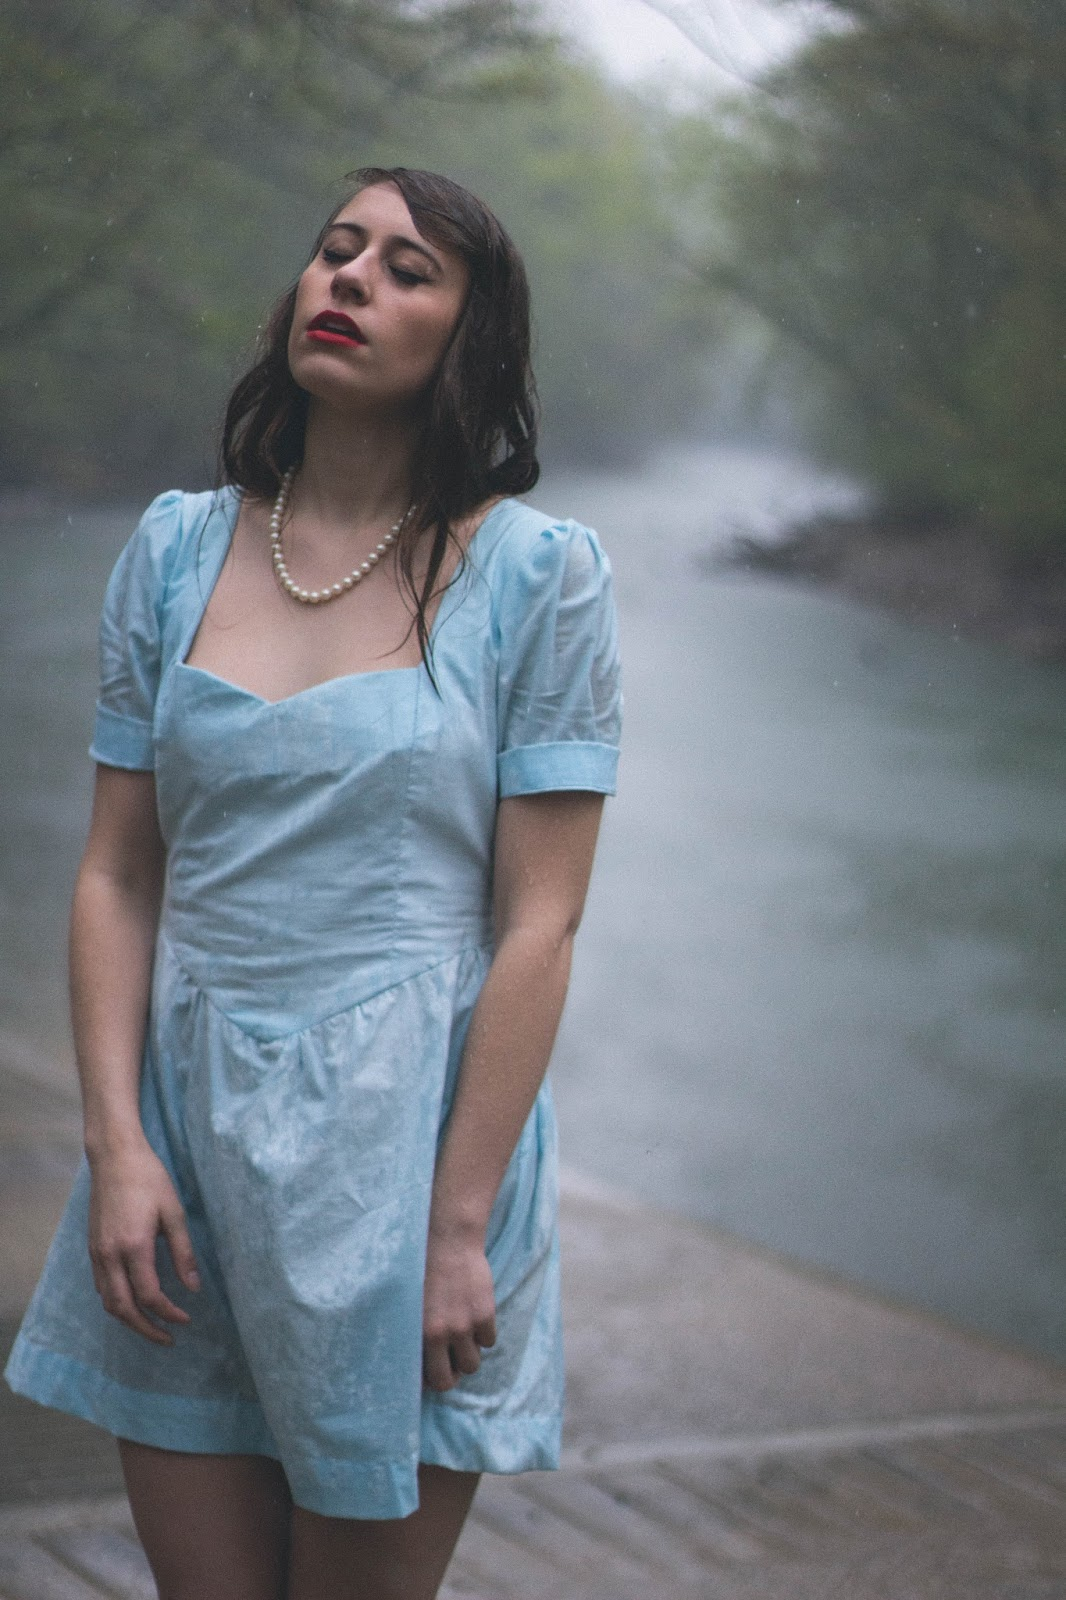 Vintage, style, retro, the notebook, allie hamilton, costume design, fashion blogger, feminine, girly, 1940s style, pretty, classic style, taylor swift style, outfit, red lips, rain photography, vintage pictures